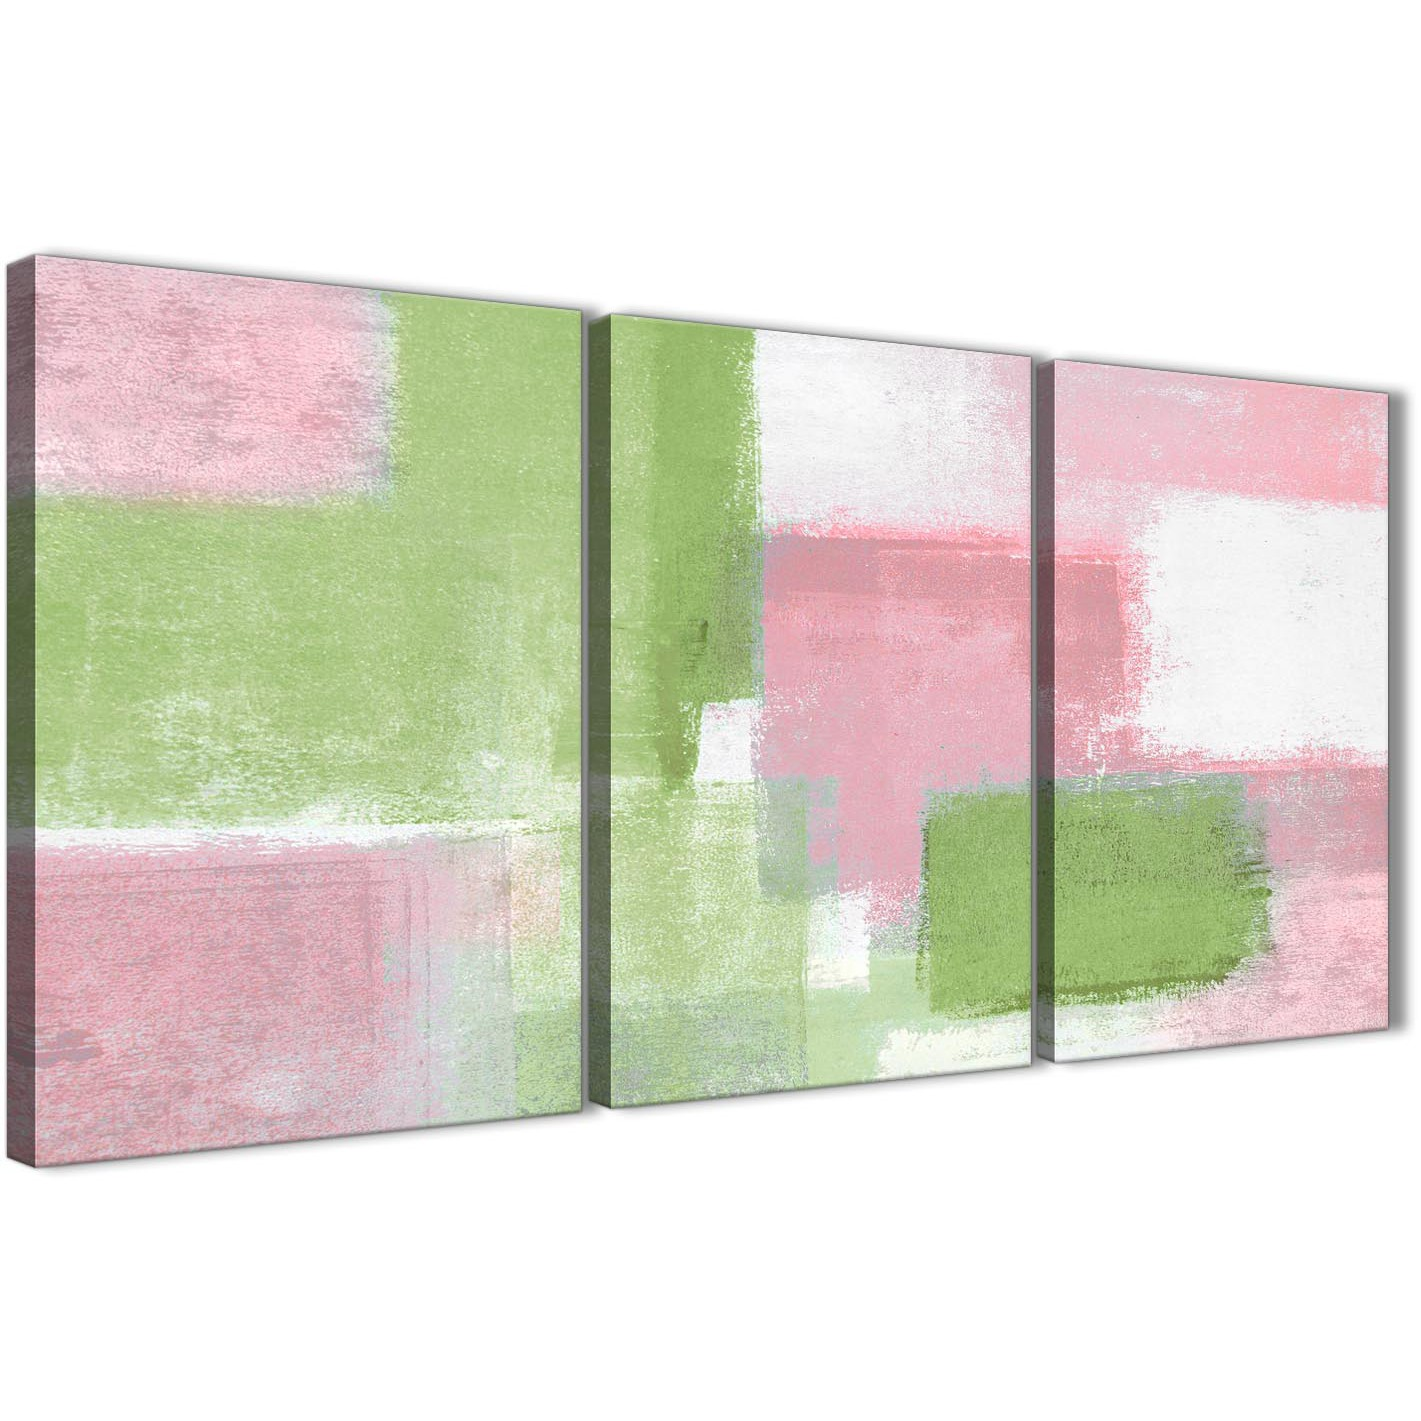 lime green office. Next Set Of 3 Piece Pink Lime Green Office Canvas Wall Art Decor - Abstract Display Gallery Item 1 H